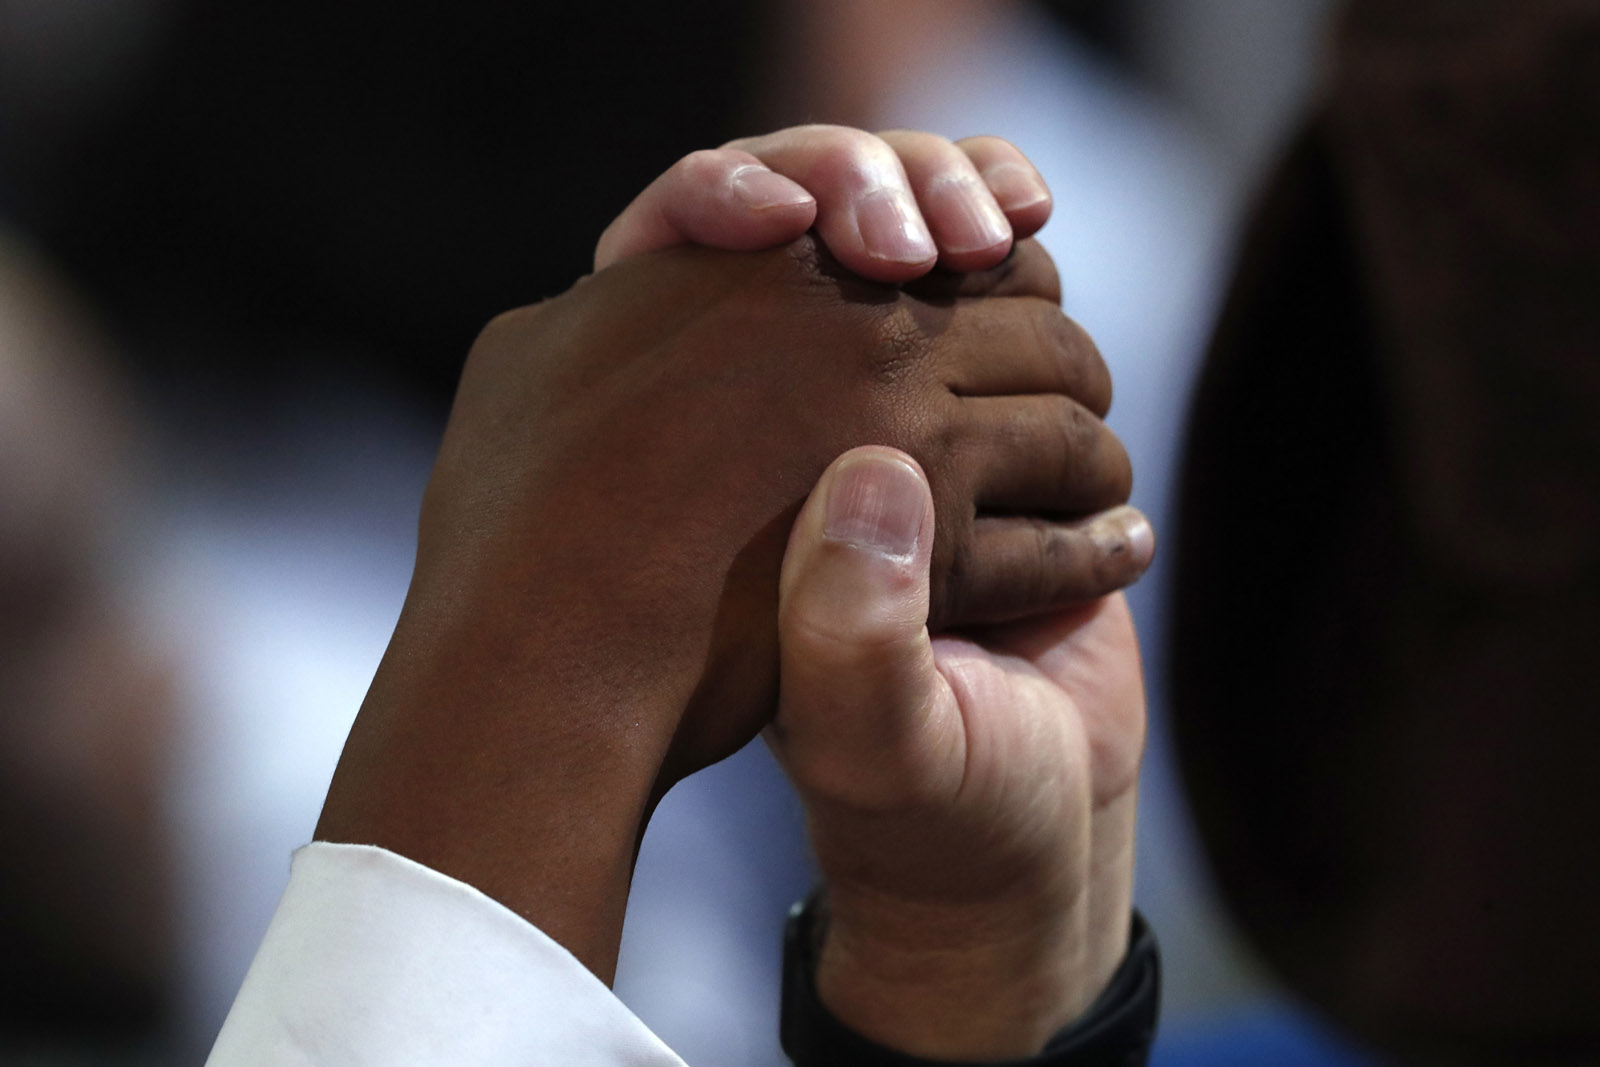 Two people join hands during the closing benediction on the final day of the Democratic National Convention in Philadelphia, Thursday, July 28, 2016. (AP Photo/Paul Sancya)